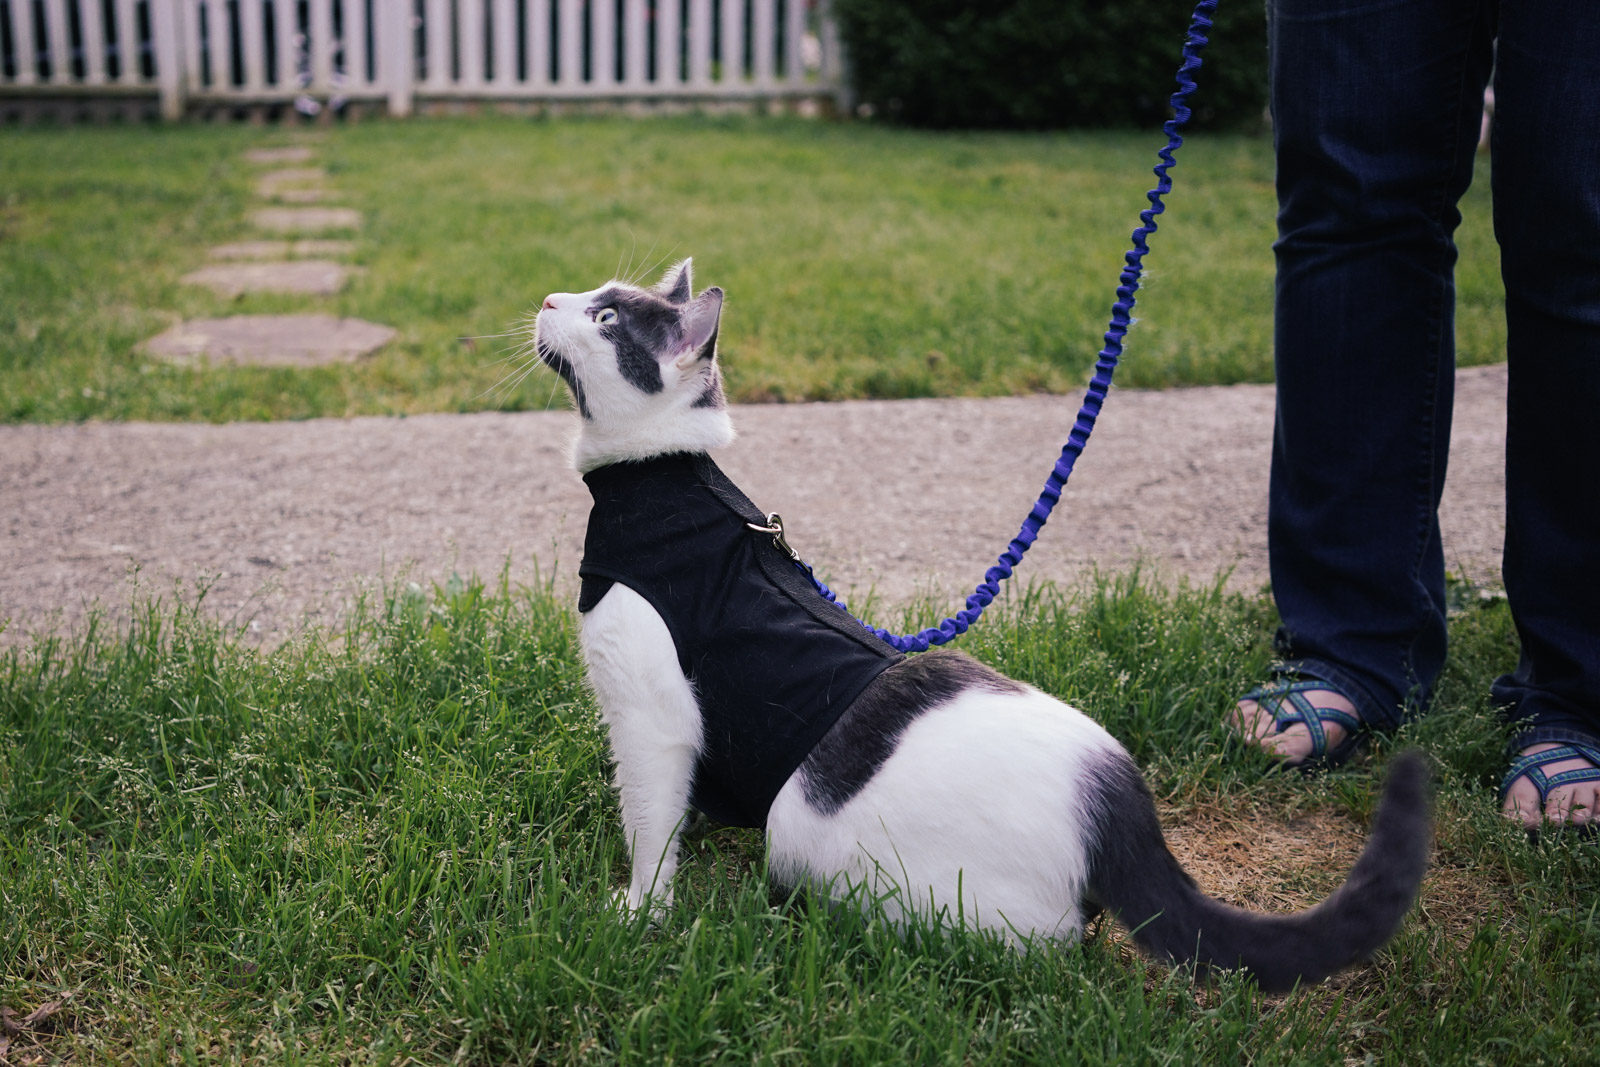 Cat Wearing Walking Jacket And Leash